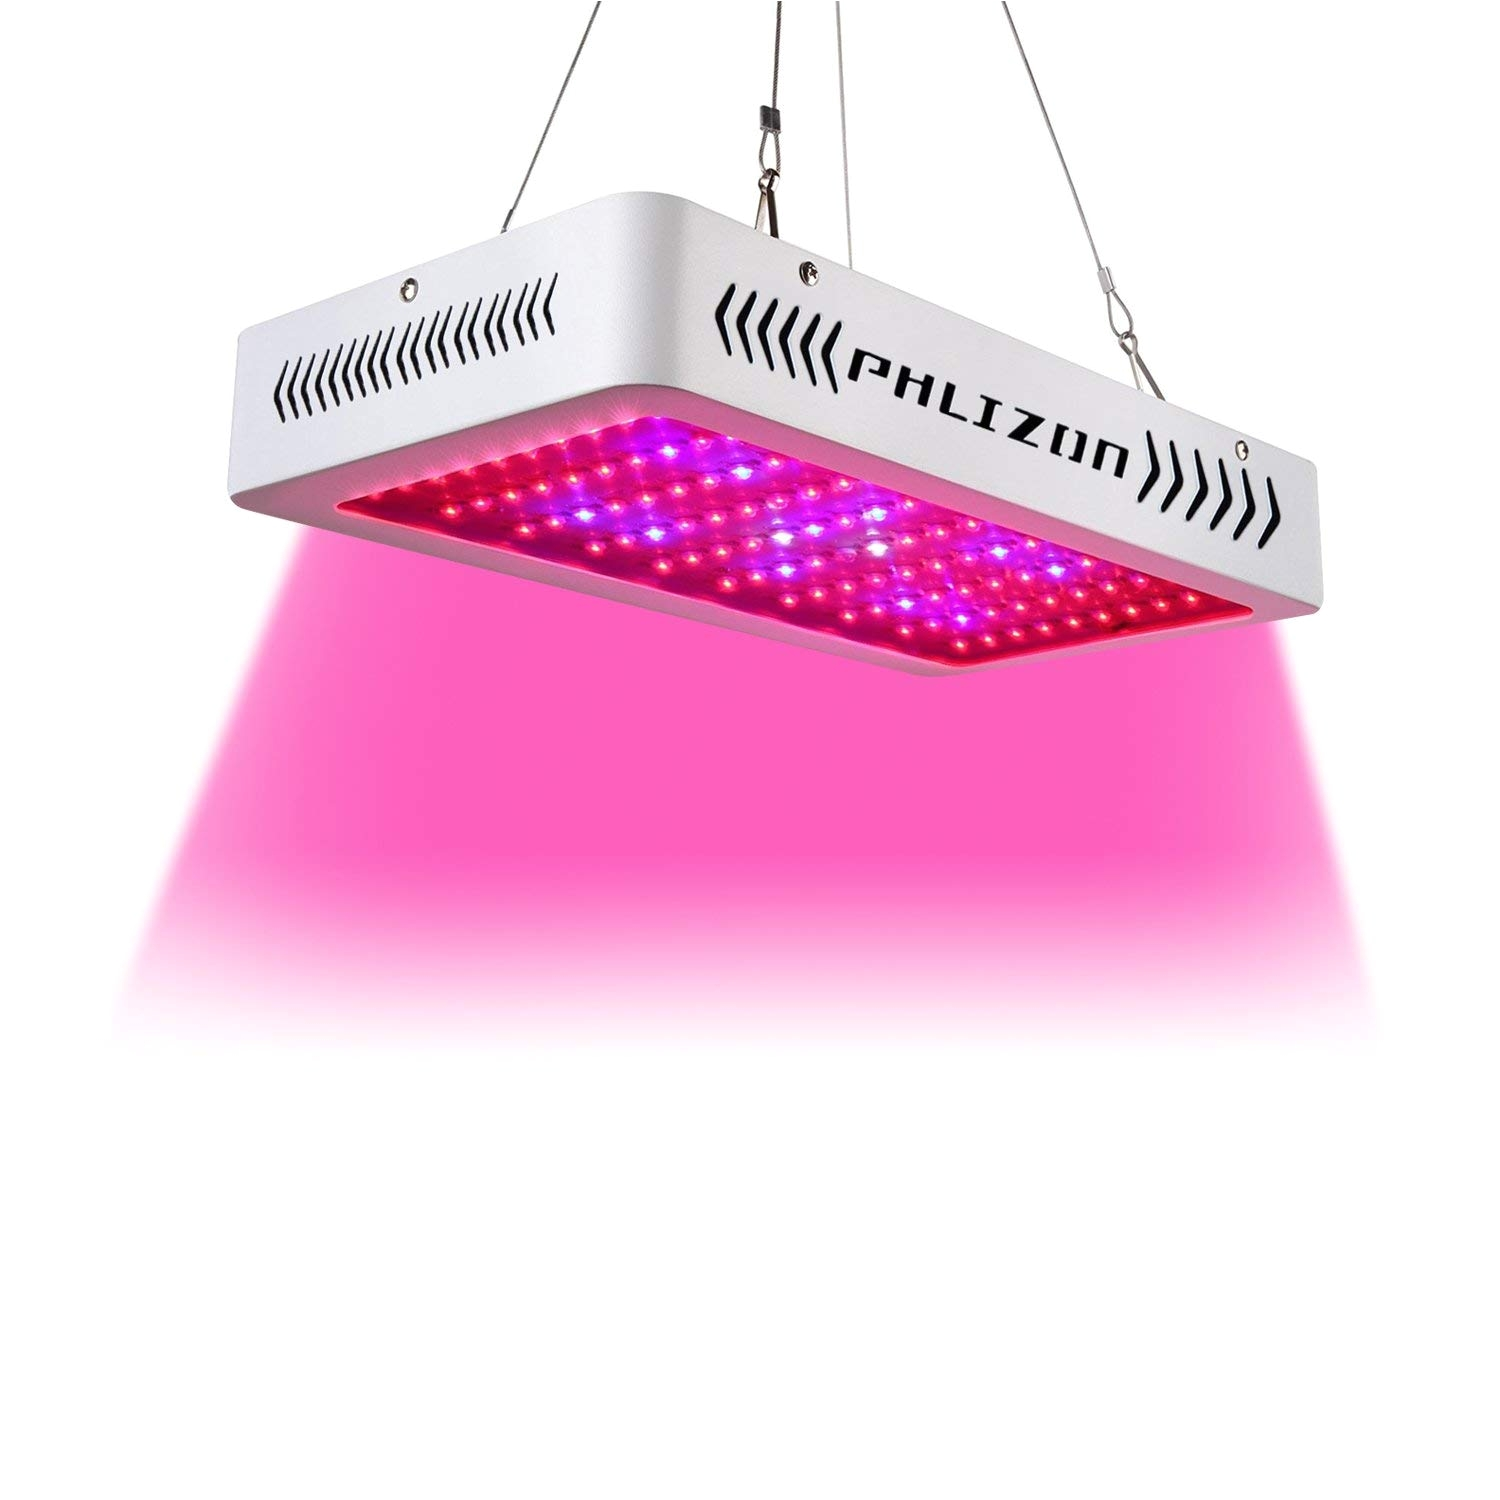 Cheap Led Grow Lights for Indoor Plants Amazon Com Phlizon Led Grow Light 300w Indoor Plant Grow Lights